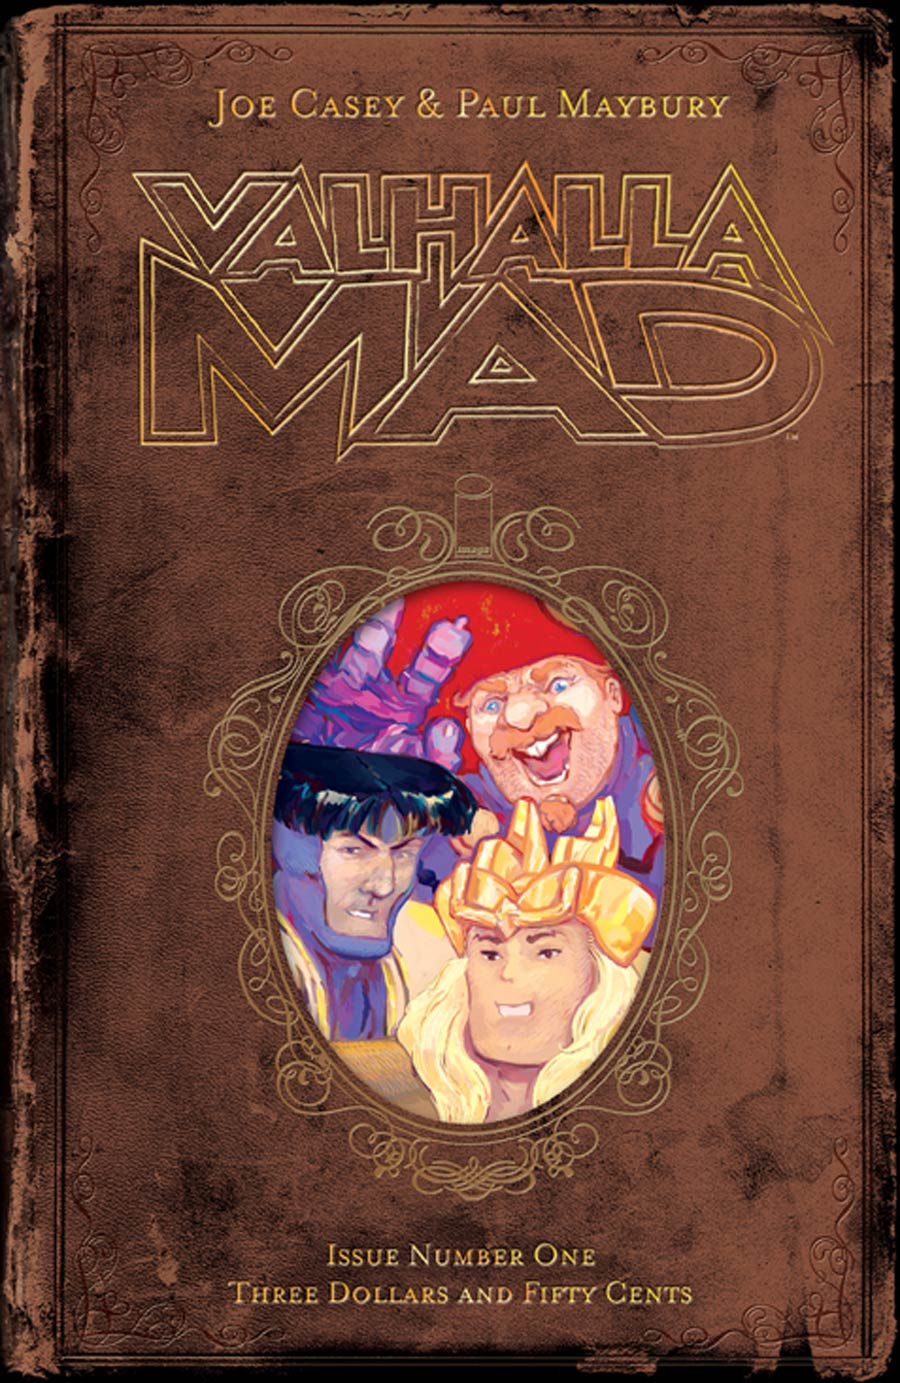 Valhalla Mad #1 Cover A Paul Maybury